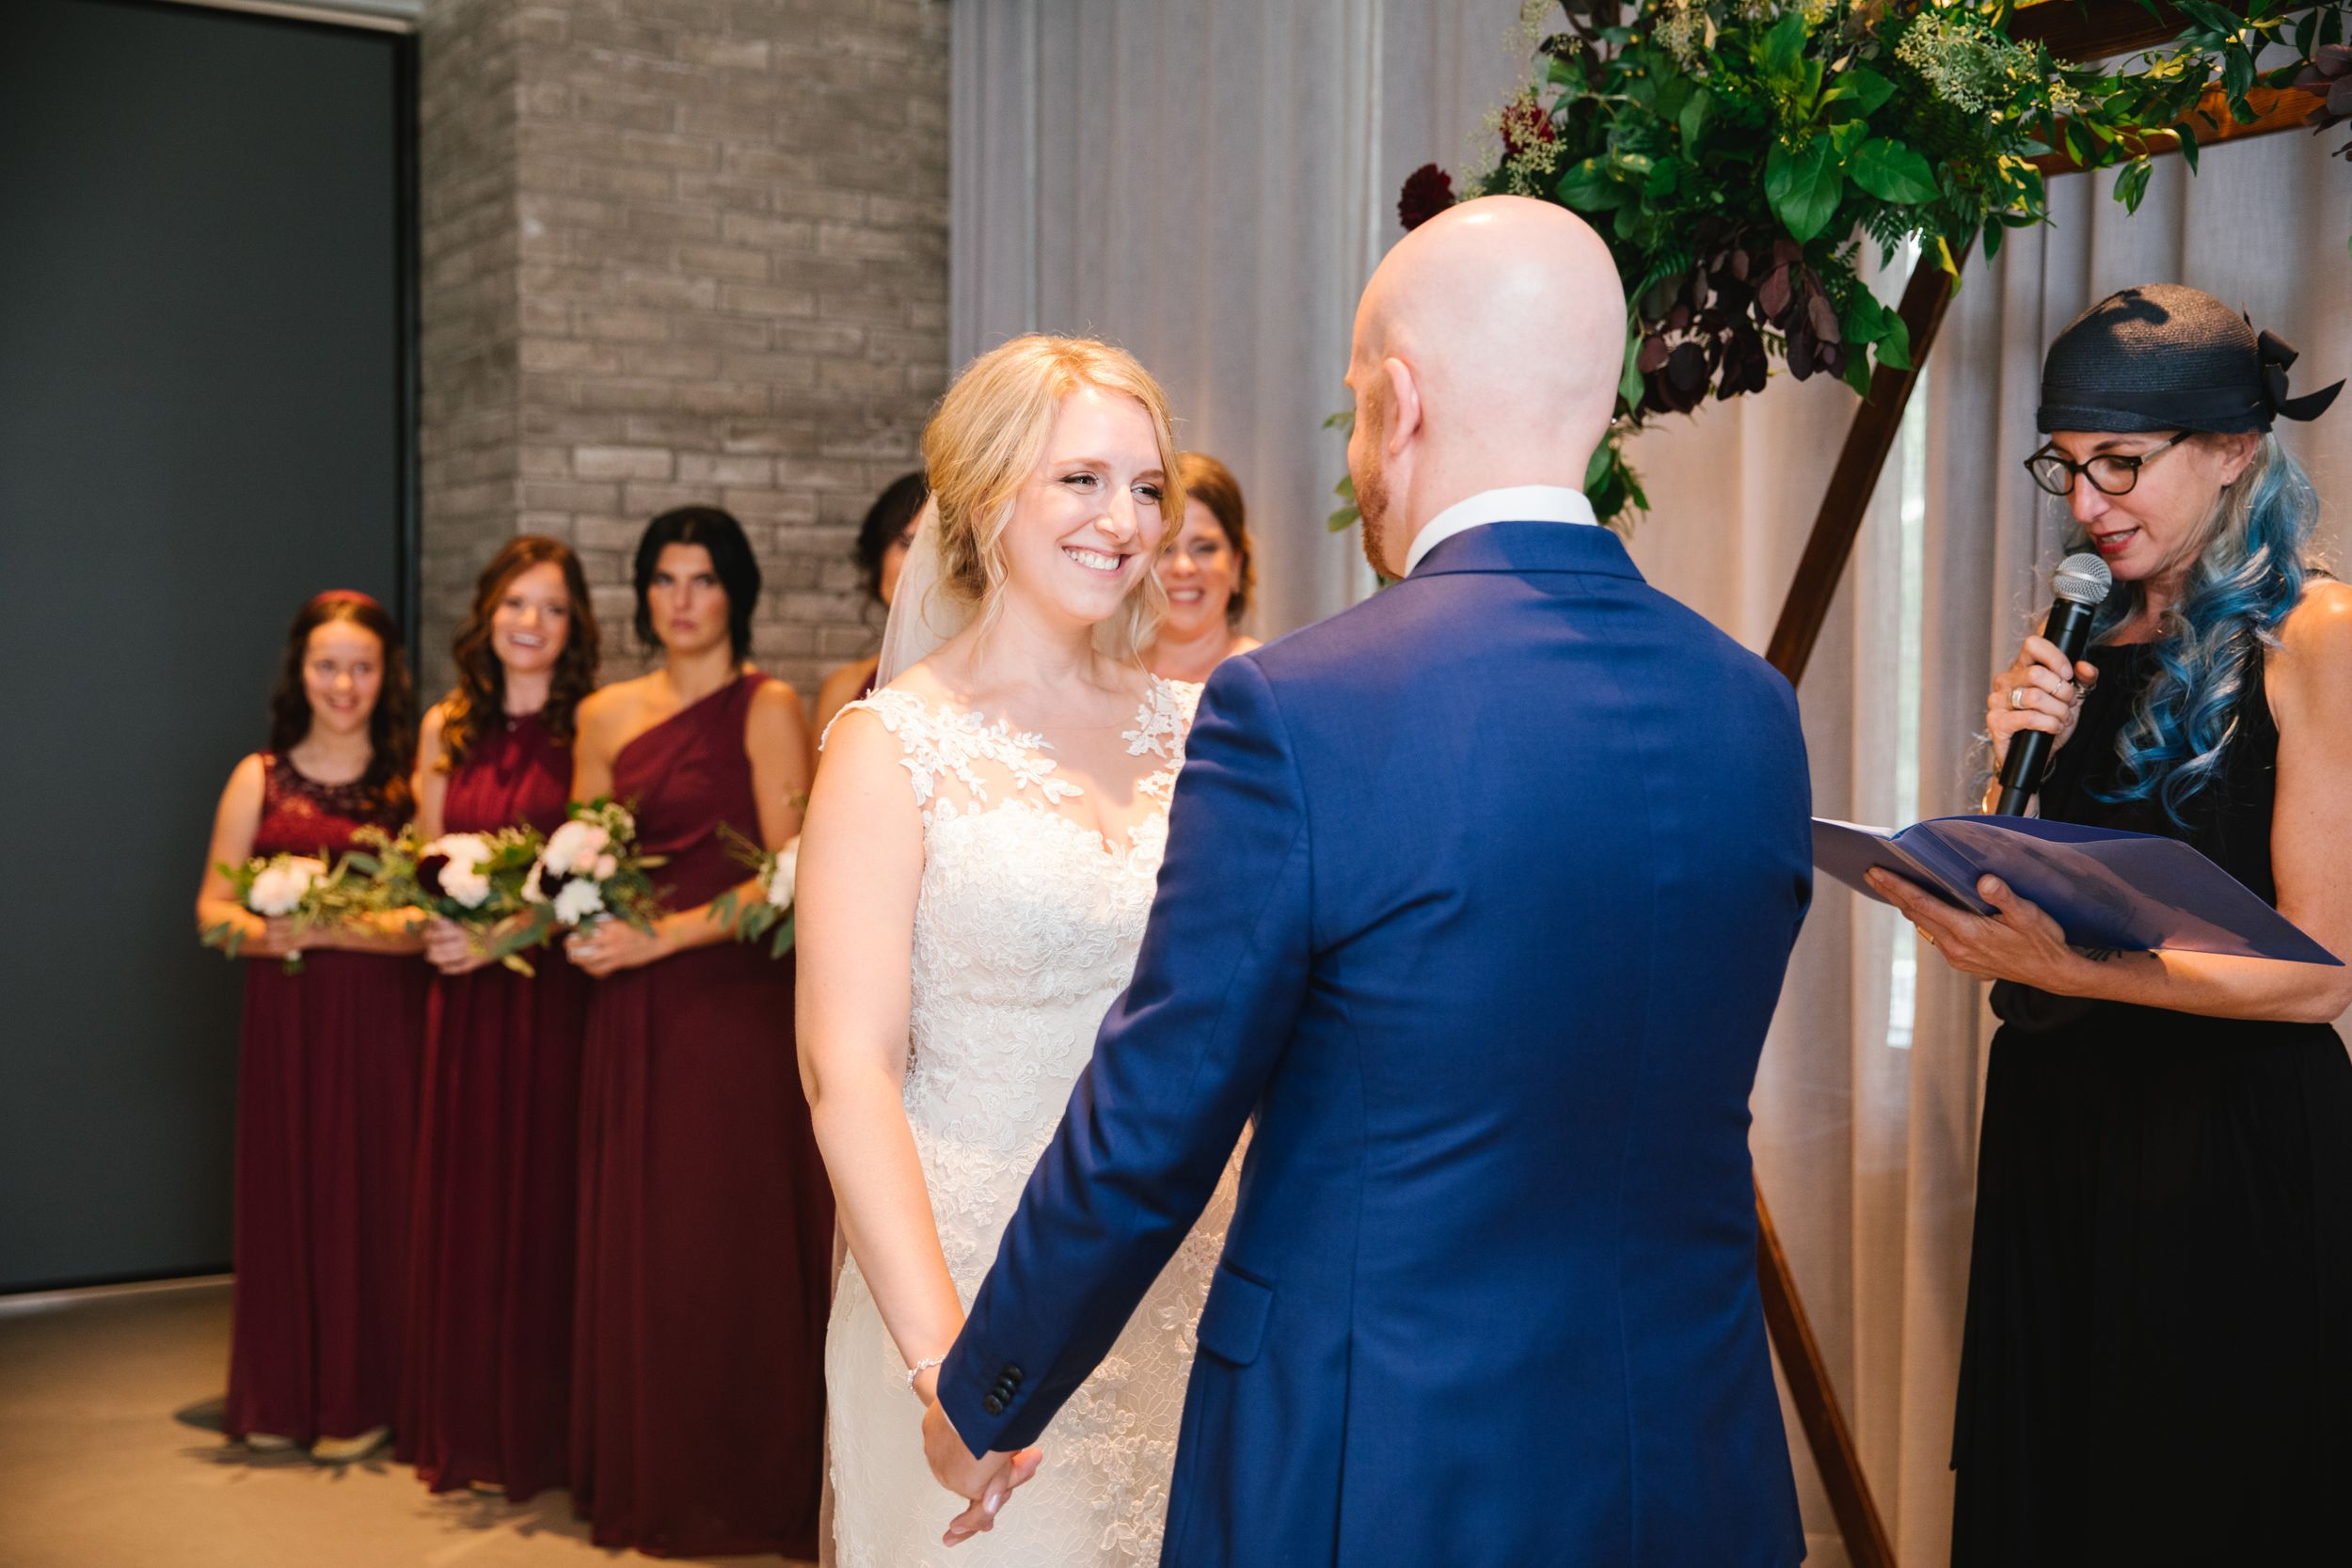 bride looking at groom and smiling with bridesmaids behind her during wedding ceremony